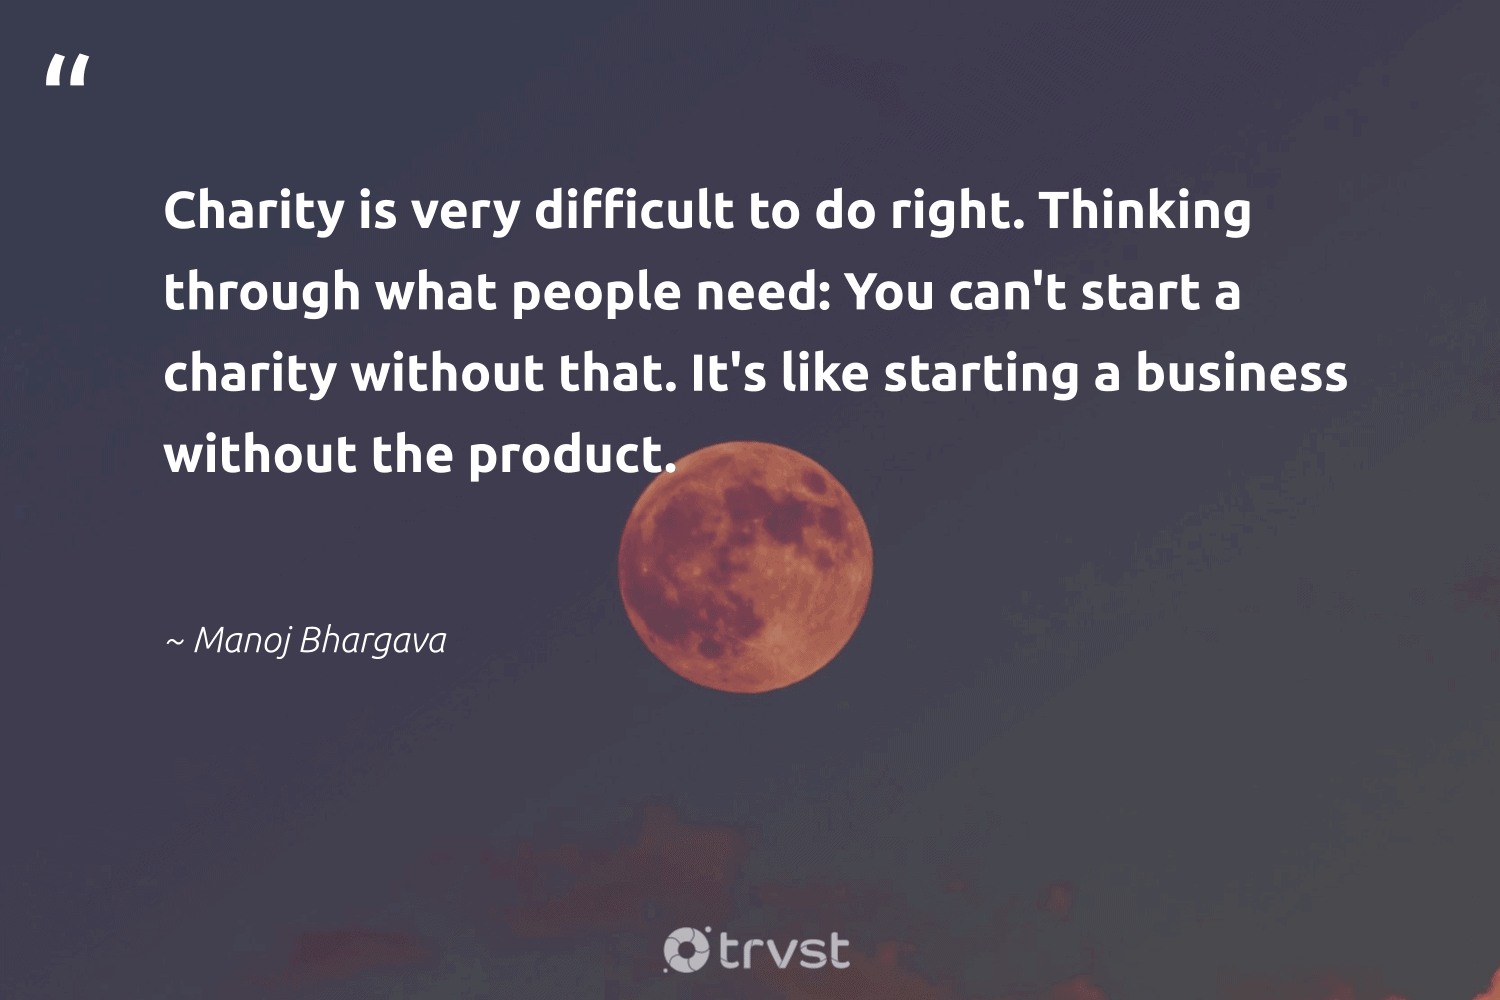 """""""Charity is very difficult to do right. Thinking through what people need: You can't start a charity without that. It's like starting a business without the product.""""  - Manoj Bhargava #trvst #quotes #communities #takeaction #workingtogether #socialchange #makeadifference #planetearthfirst #strongercommunities #bethechange #equalopportunity #thinkgreen"""